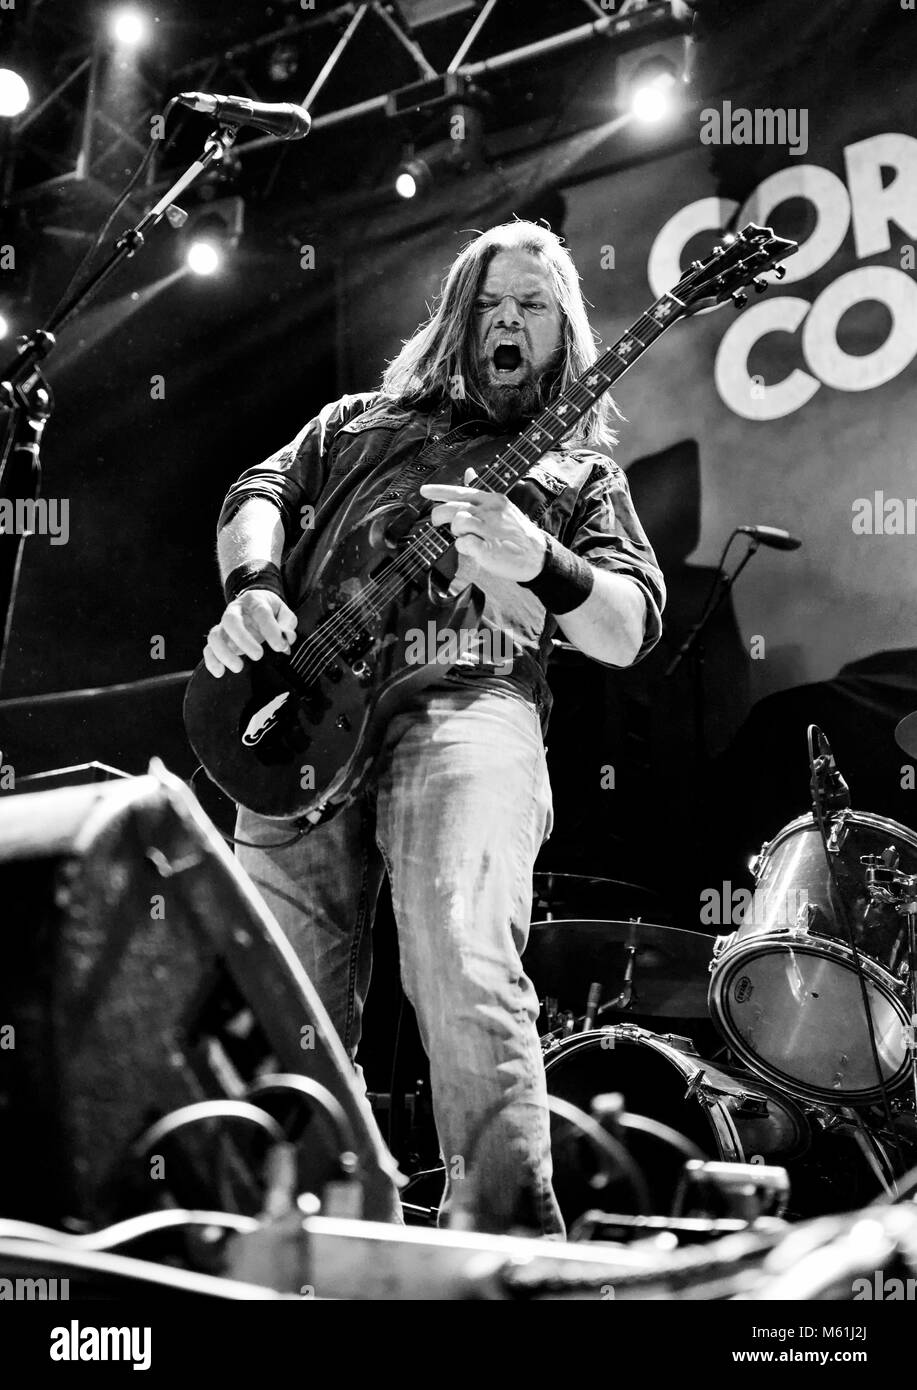 Las Vegas, Nevada, February 23, 2018 - Pepper Keenan of Corrosion of Conformity at the House of Blues in Las Vegas, - Stock Image